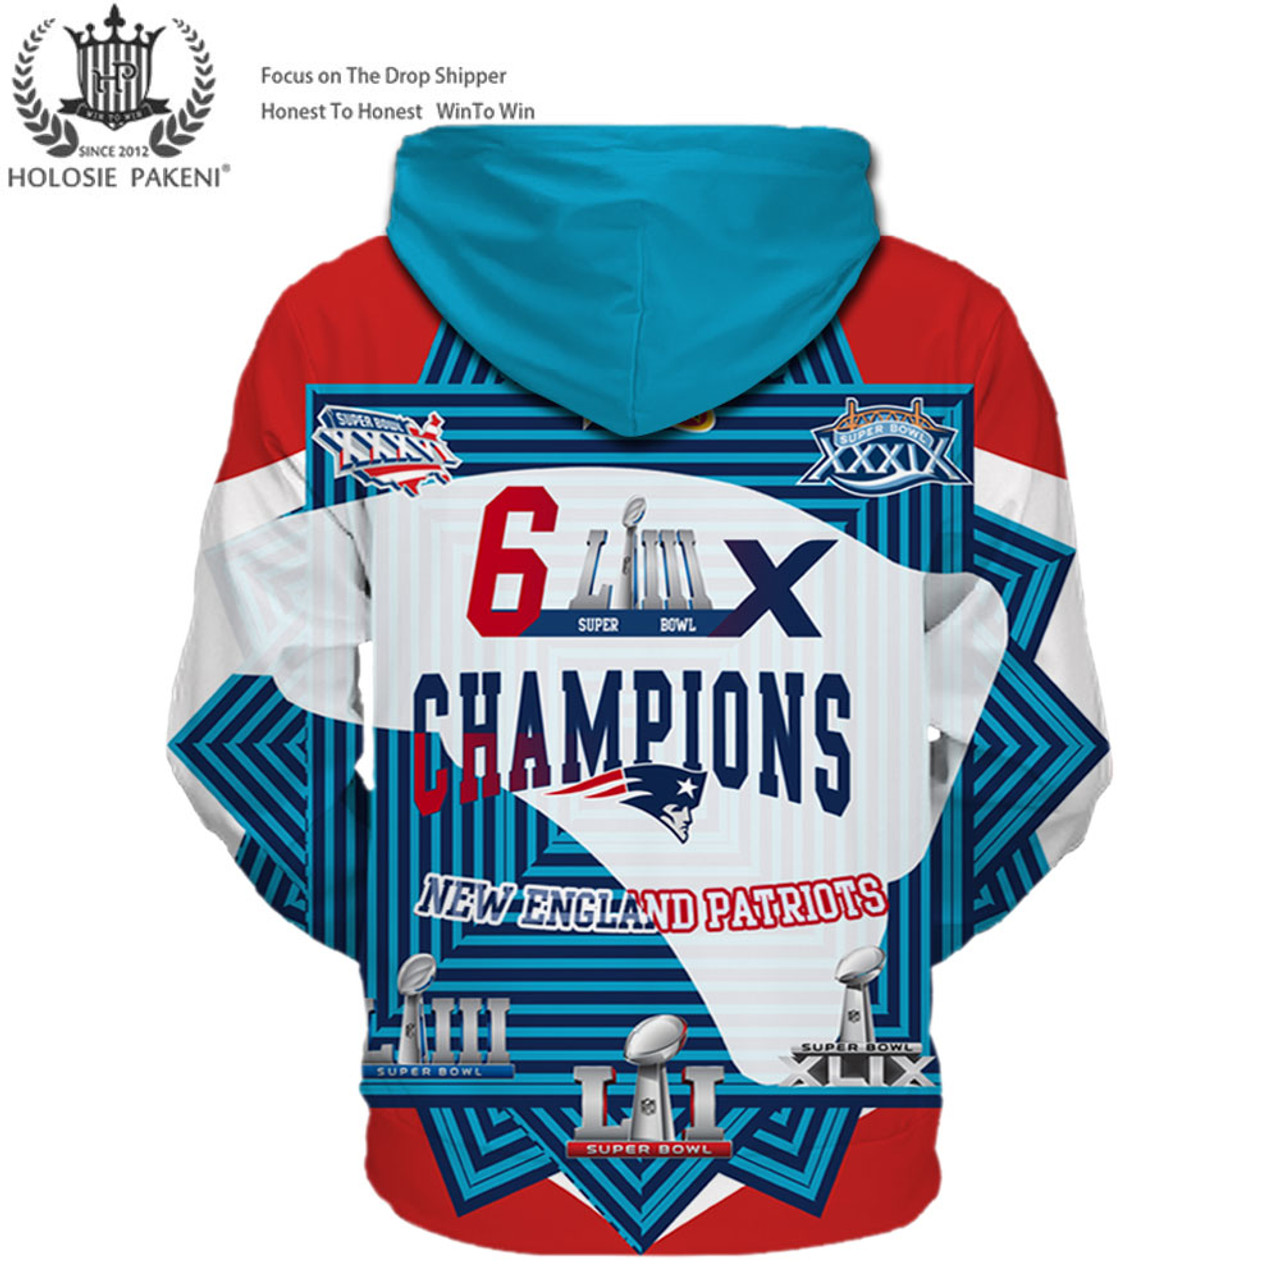 **(OFFICIAL-N.F.L.NEW-ENGLAND-PATRIOTS-CUSTOM-SUPER-BOWL-LIII-CHAMPIONS-PREMIUM-PULLOVER-HOODIES/SIX-TIMES-SUPER-BOWL-CHAMPION-WINNERS/CUSTOM-3D-GRAPHIC-DOUBLE-SIDED-PRINTING/WITH-OFFICIAL-PATRIOTS-LOGOS & OFFICIAL-NFL-PATRIOTS-TEAM-COLORS-HOODIES)**